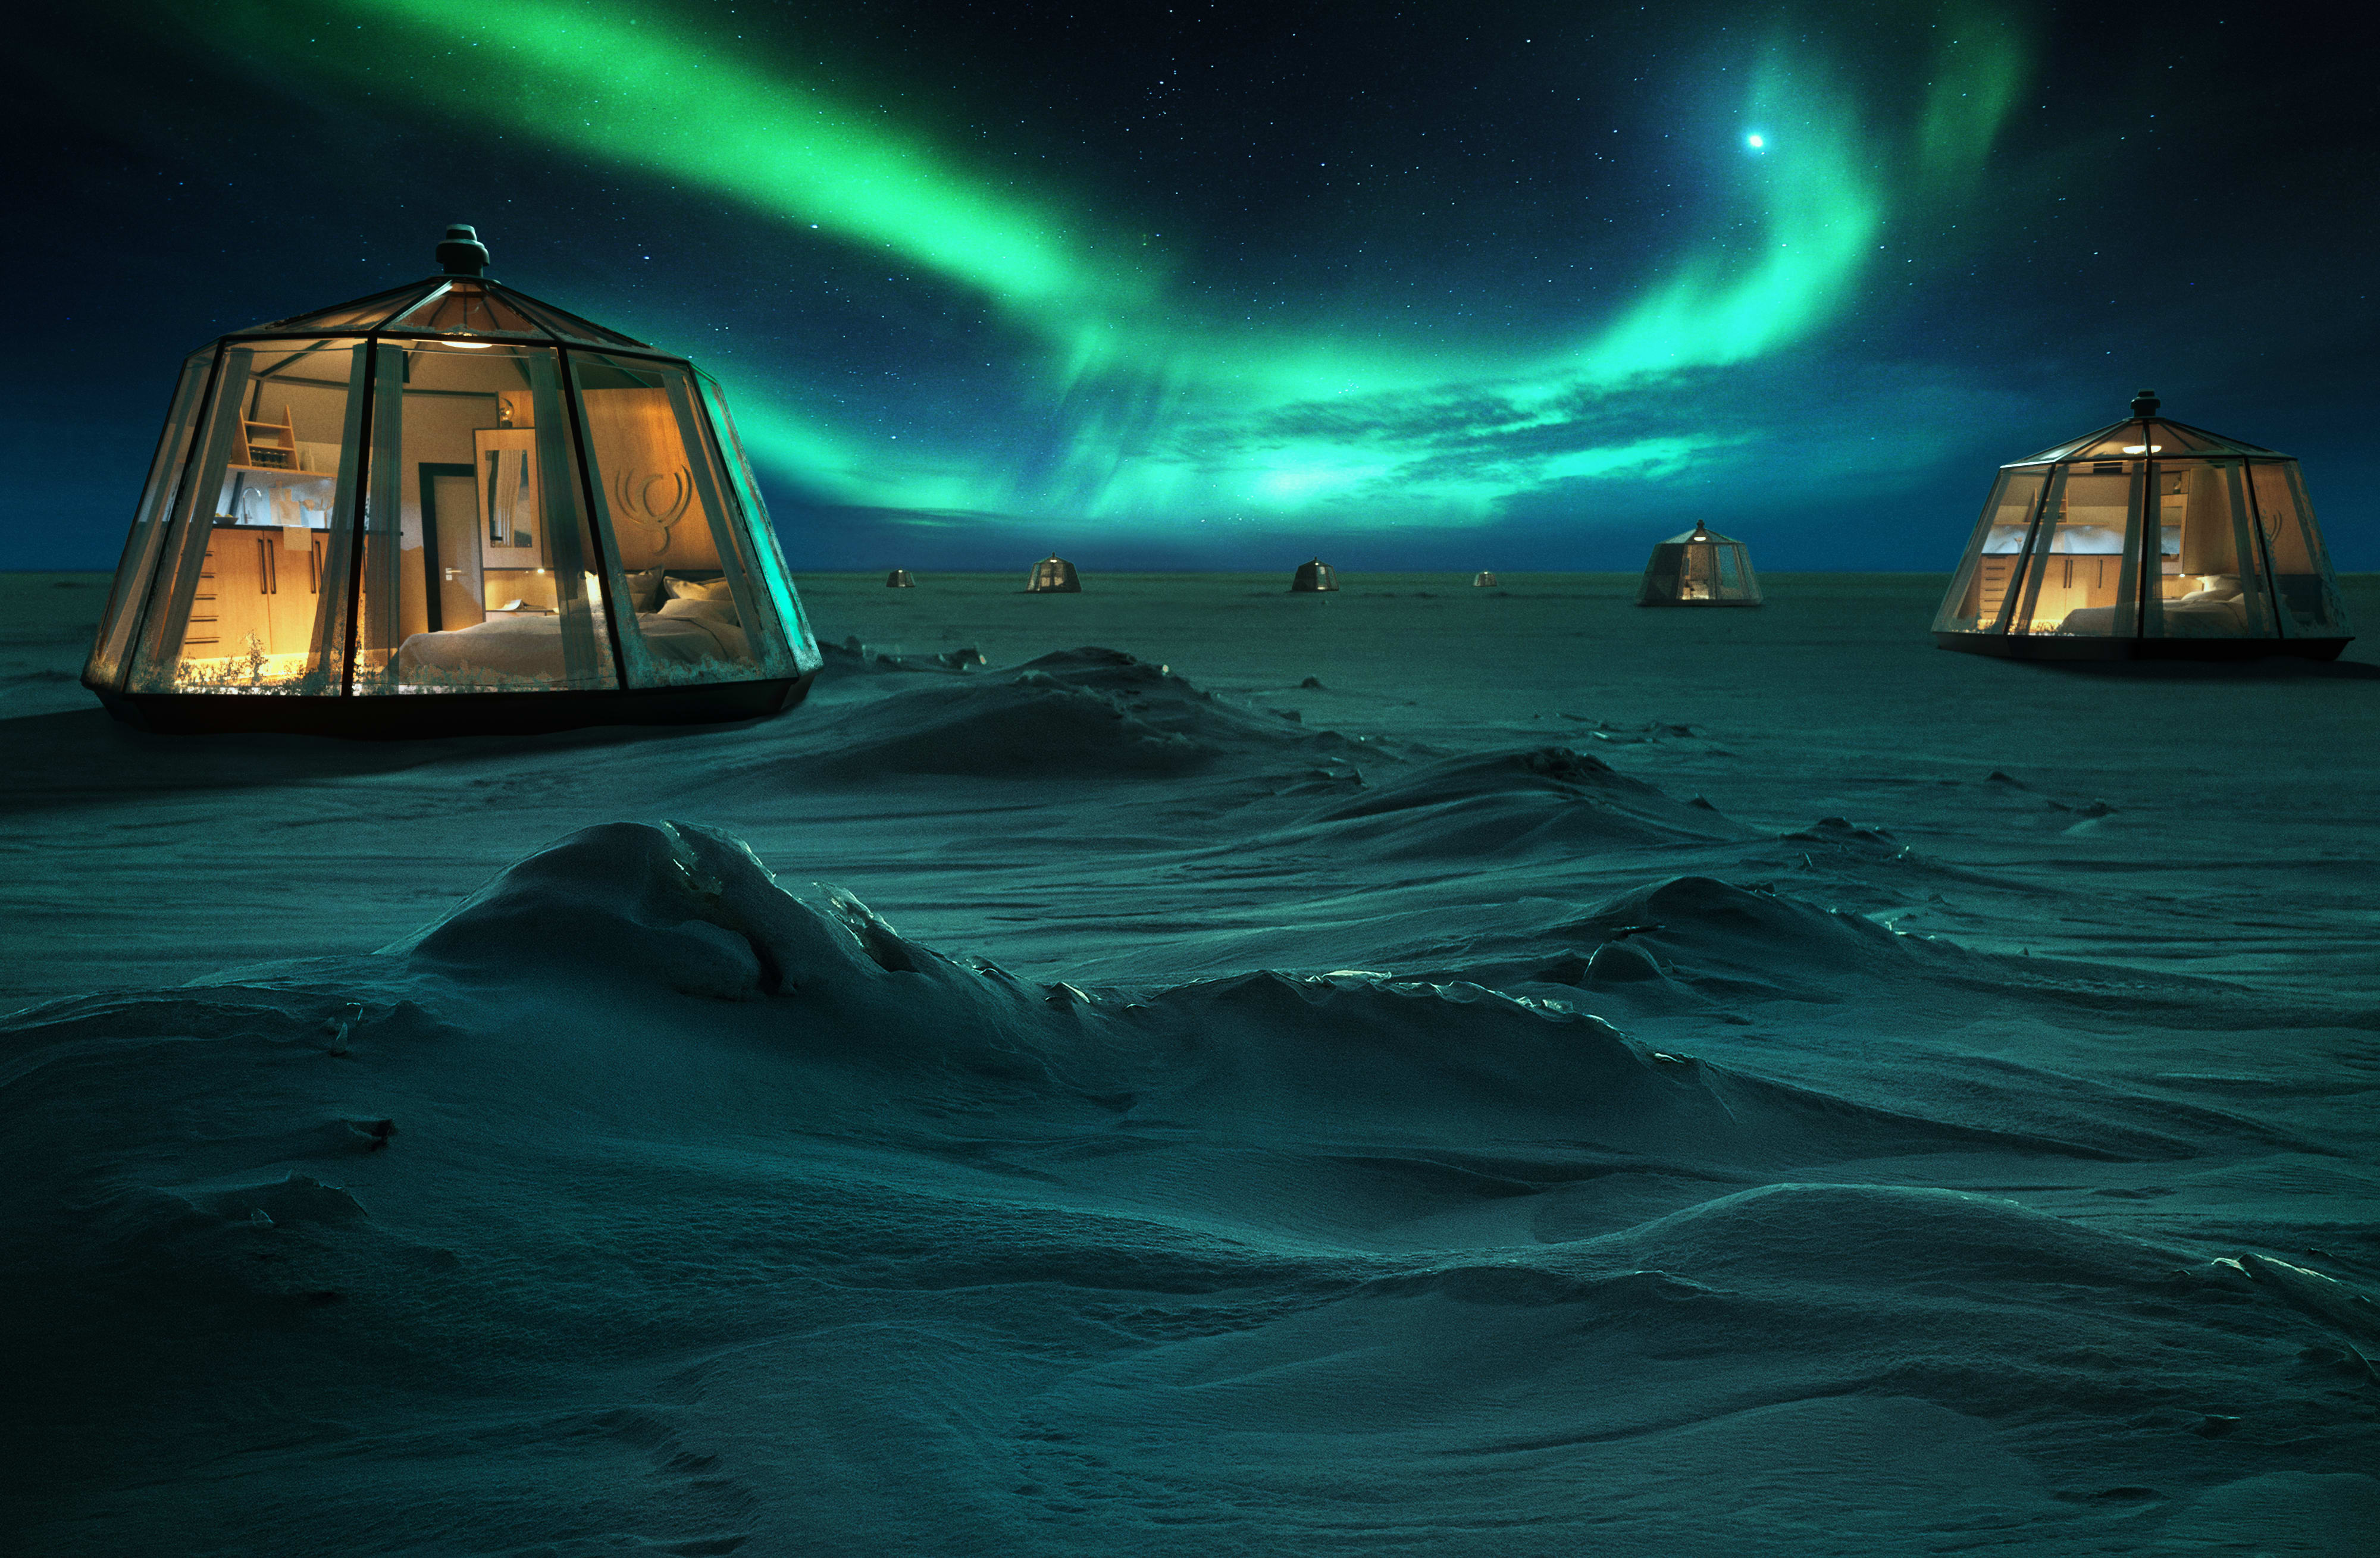 Pop-up hotel in the North Pole will charge guests $100,000 to stay